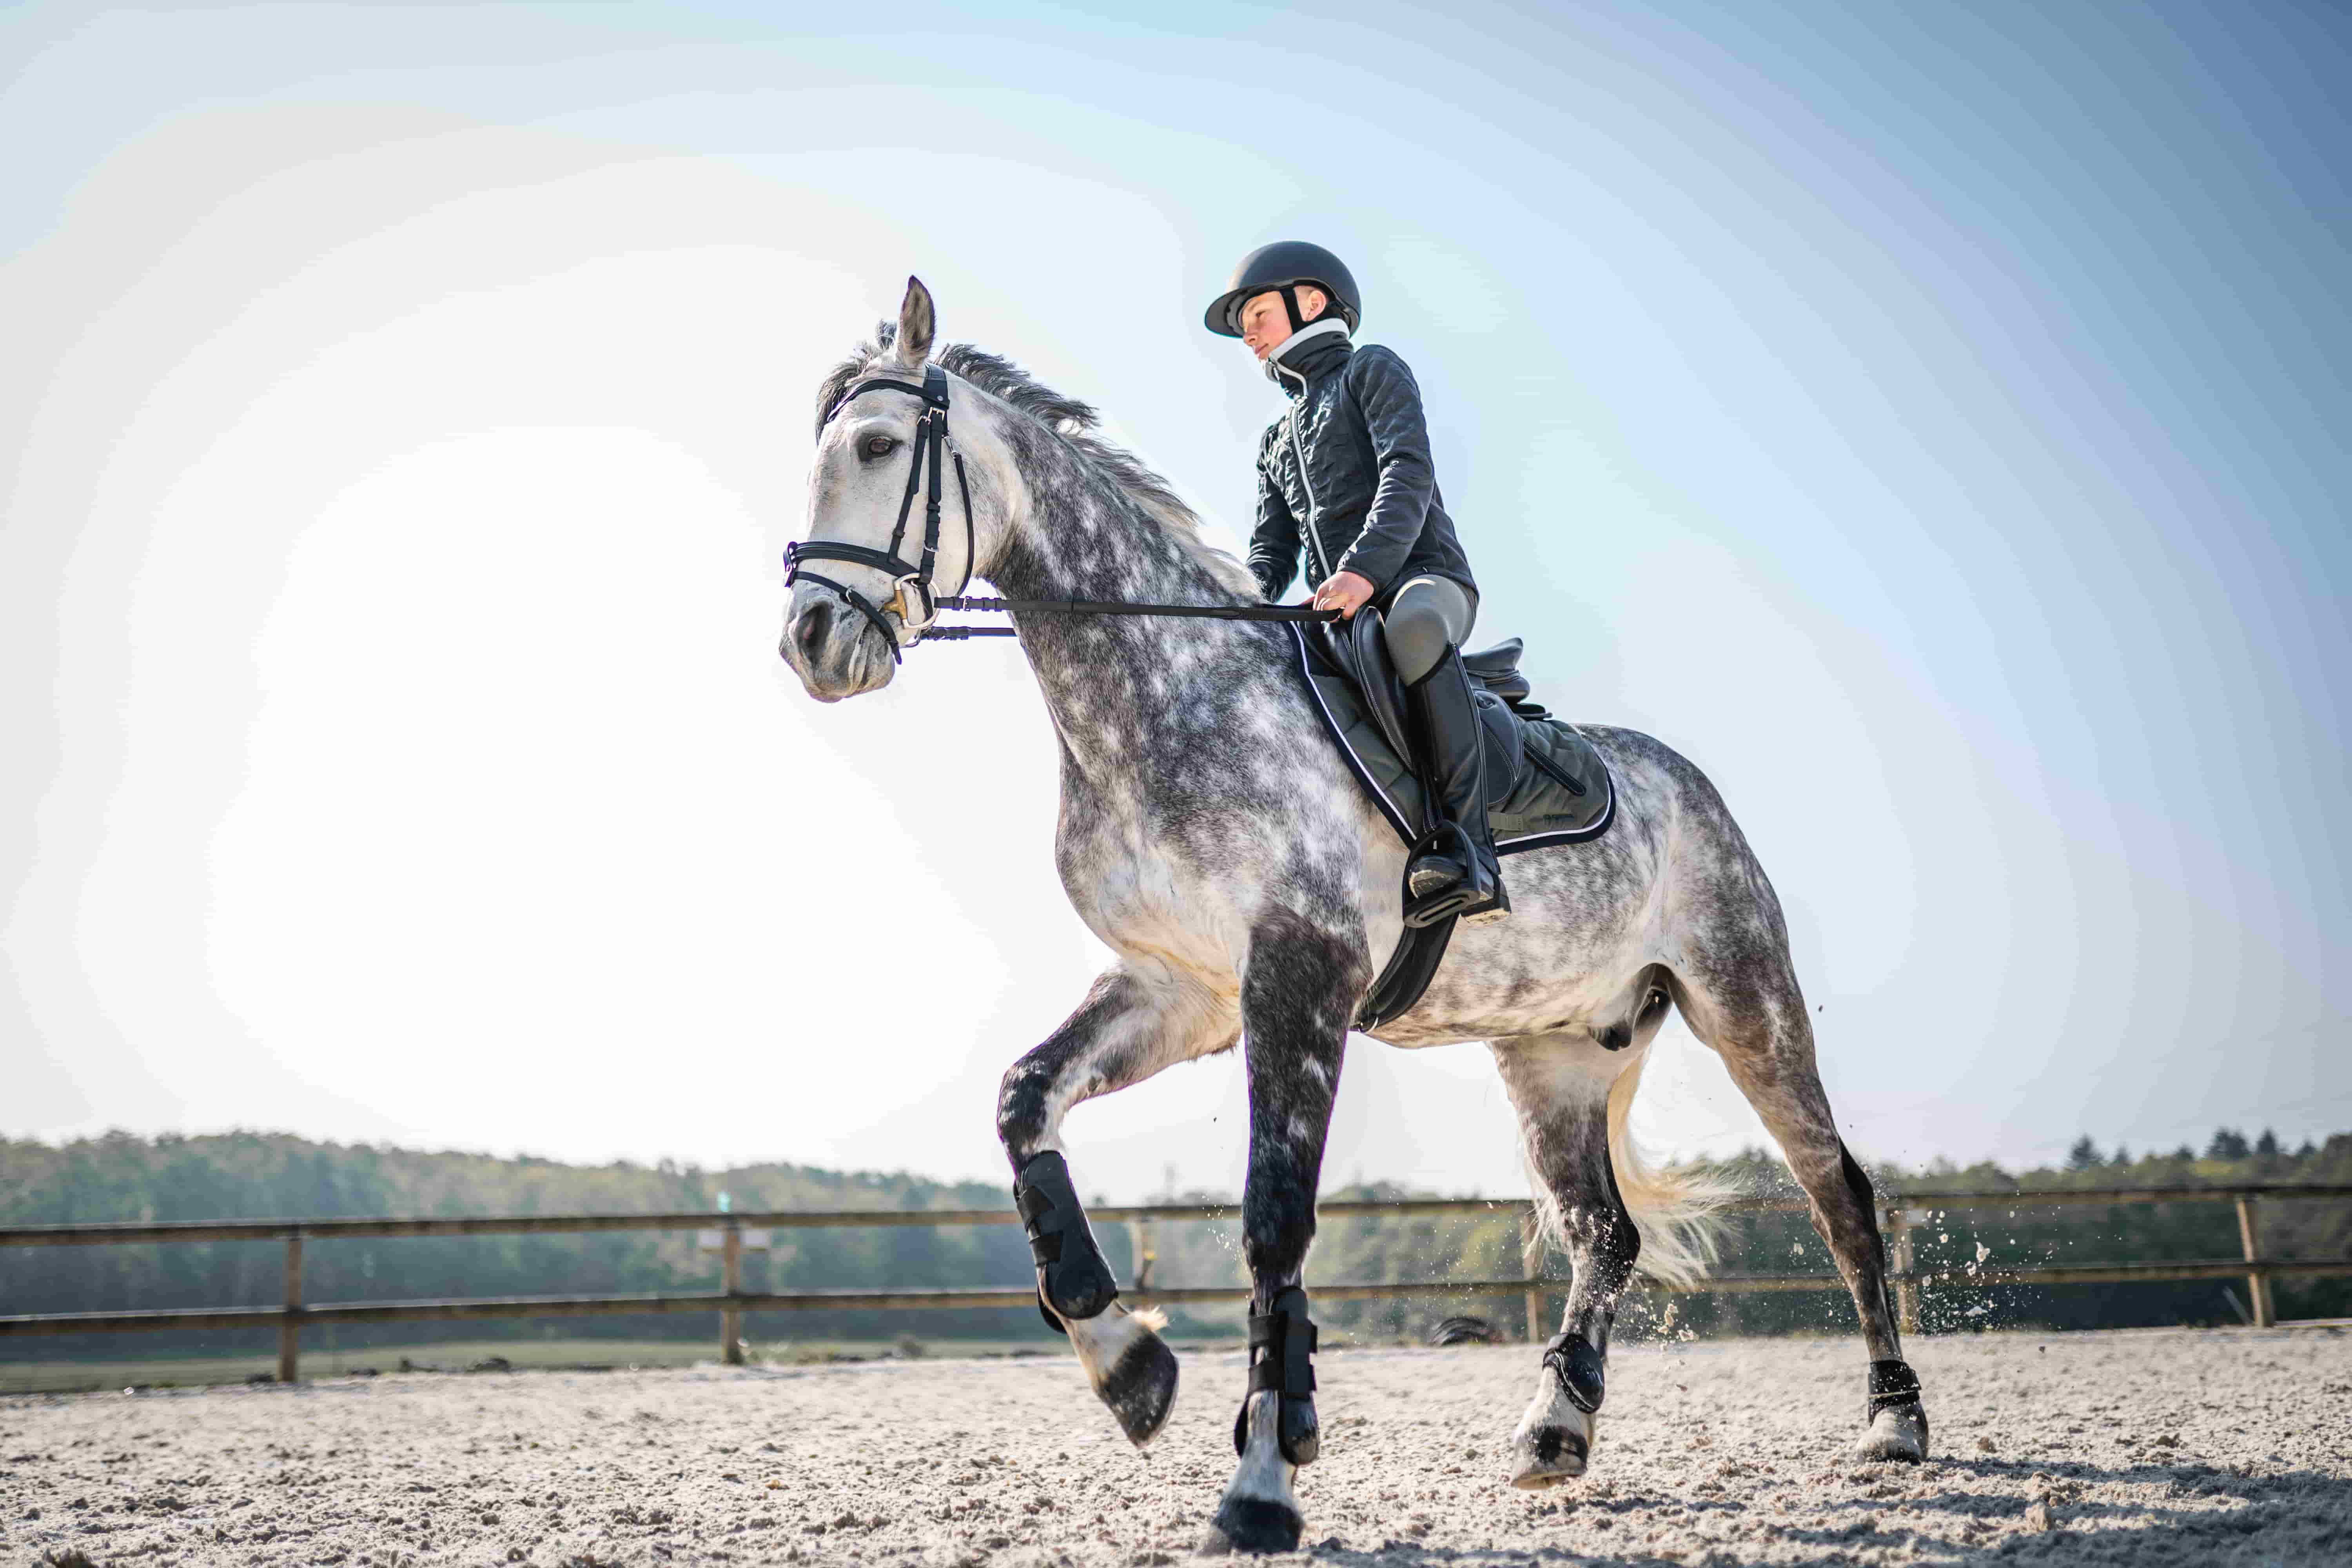 5 Reasons Why Horse Riding is Good for Your Health